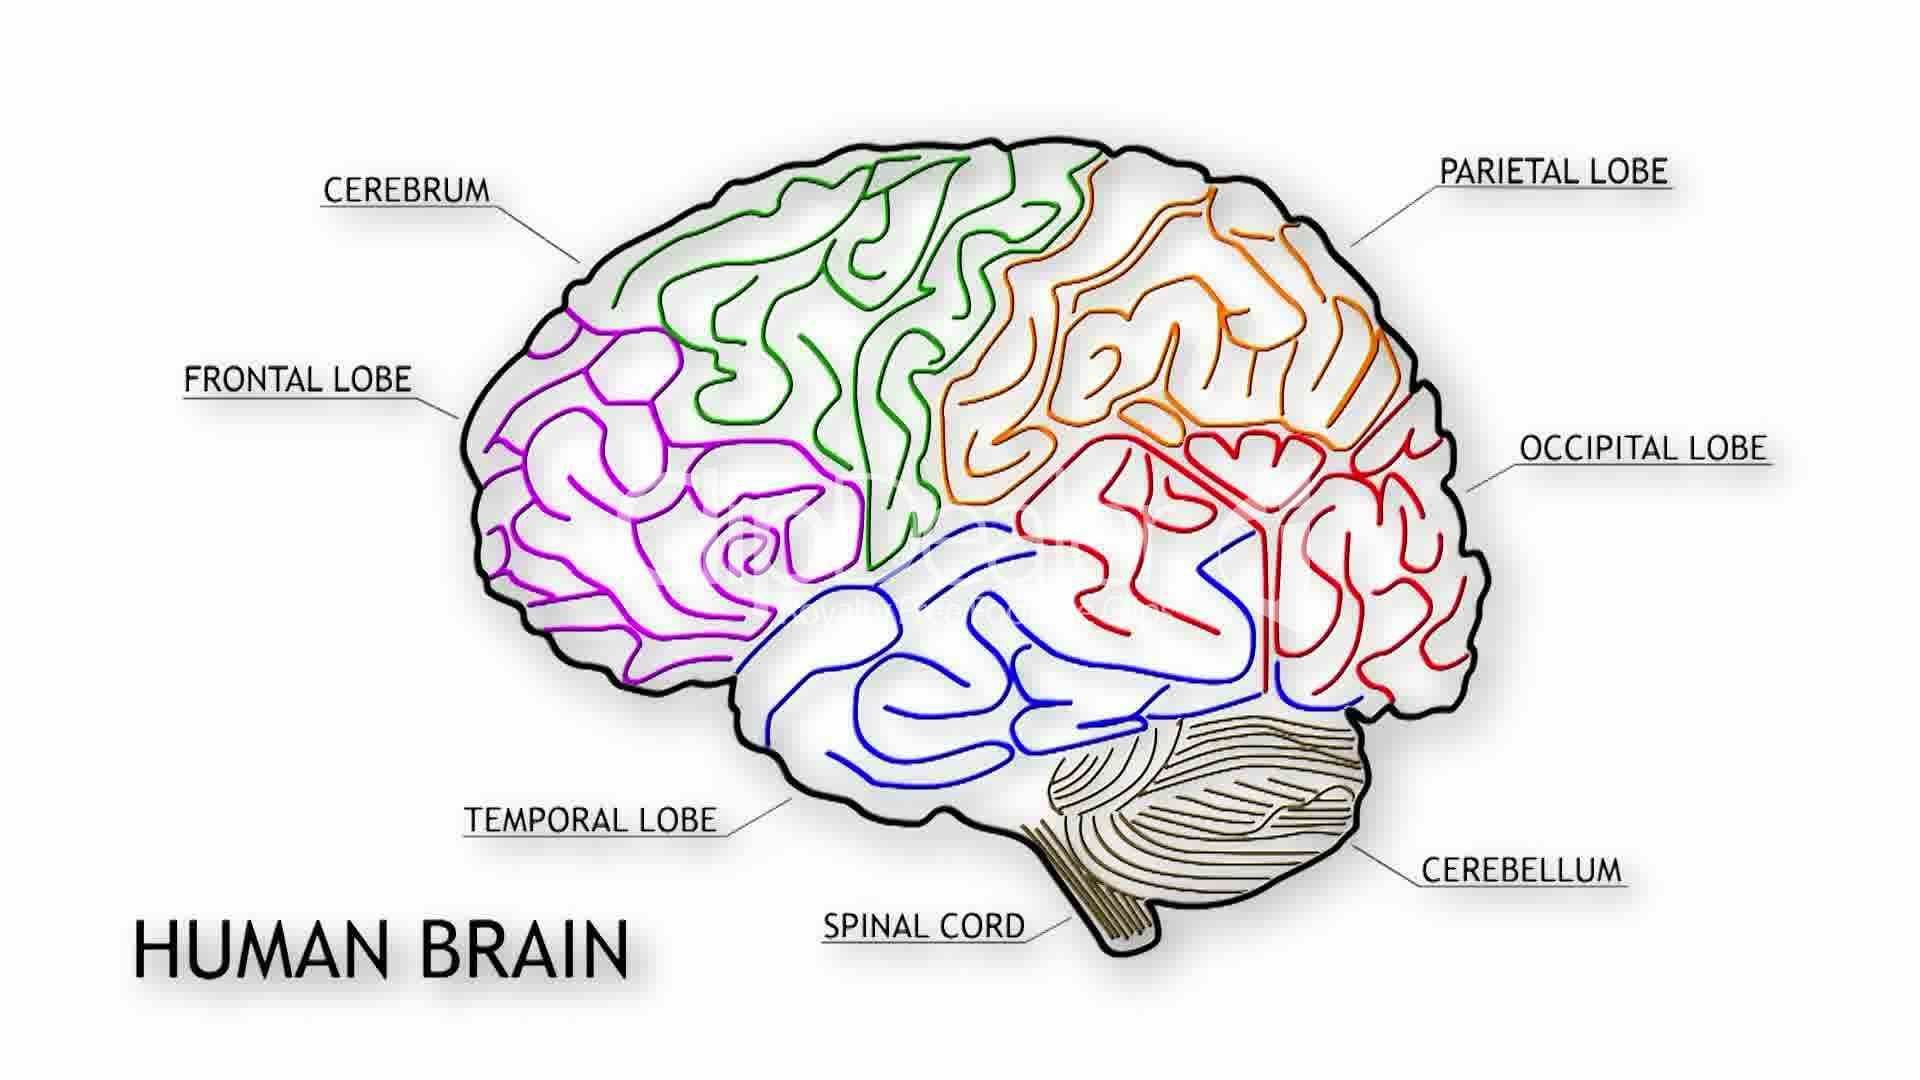 Simple Diagram Showing The Lobes Of The Human Brain The